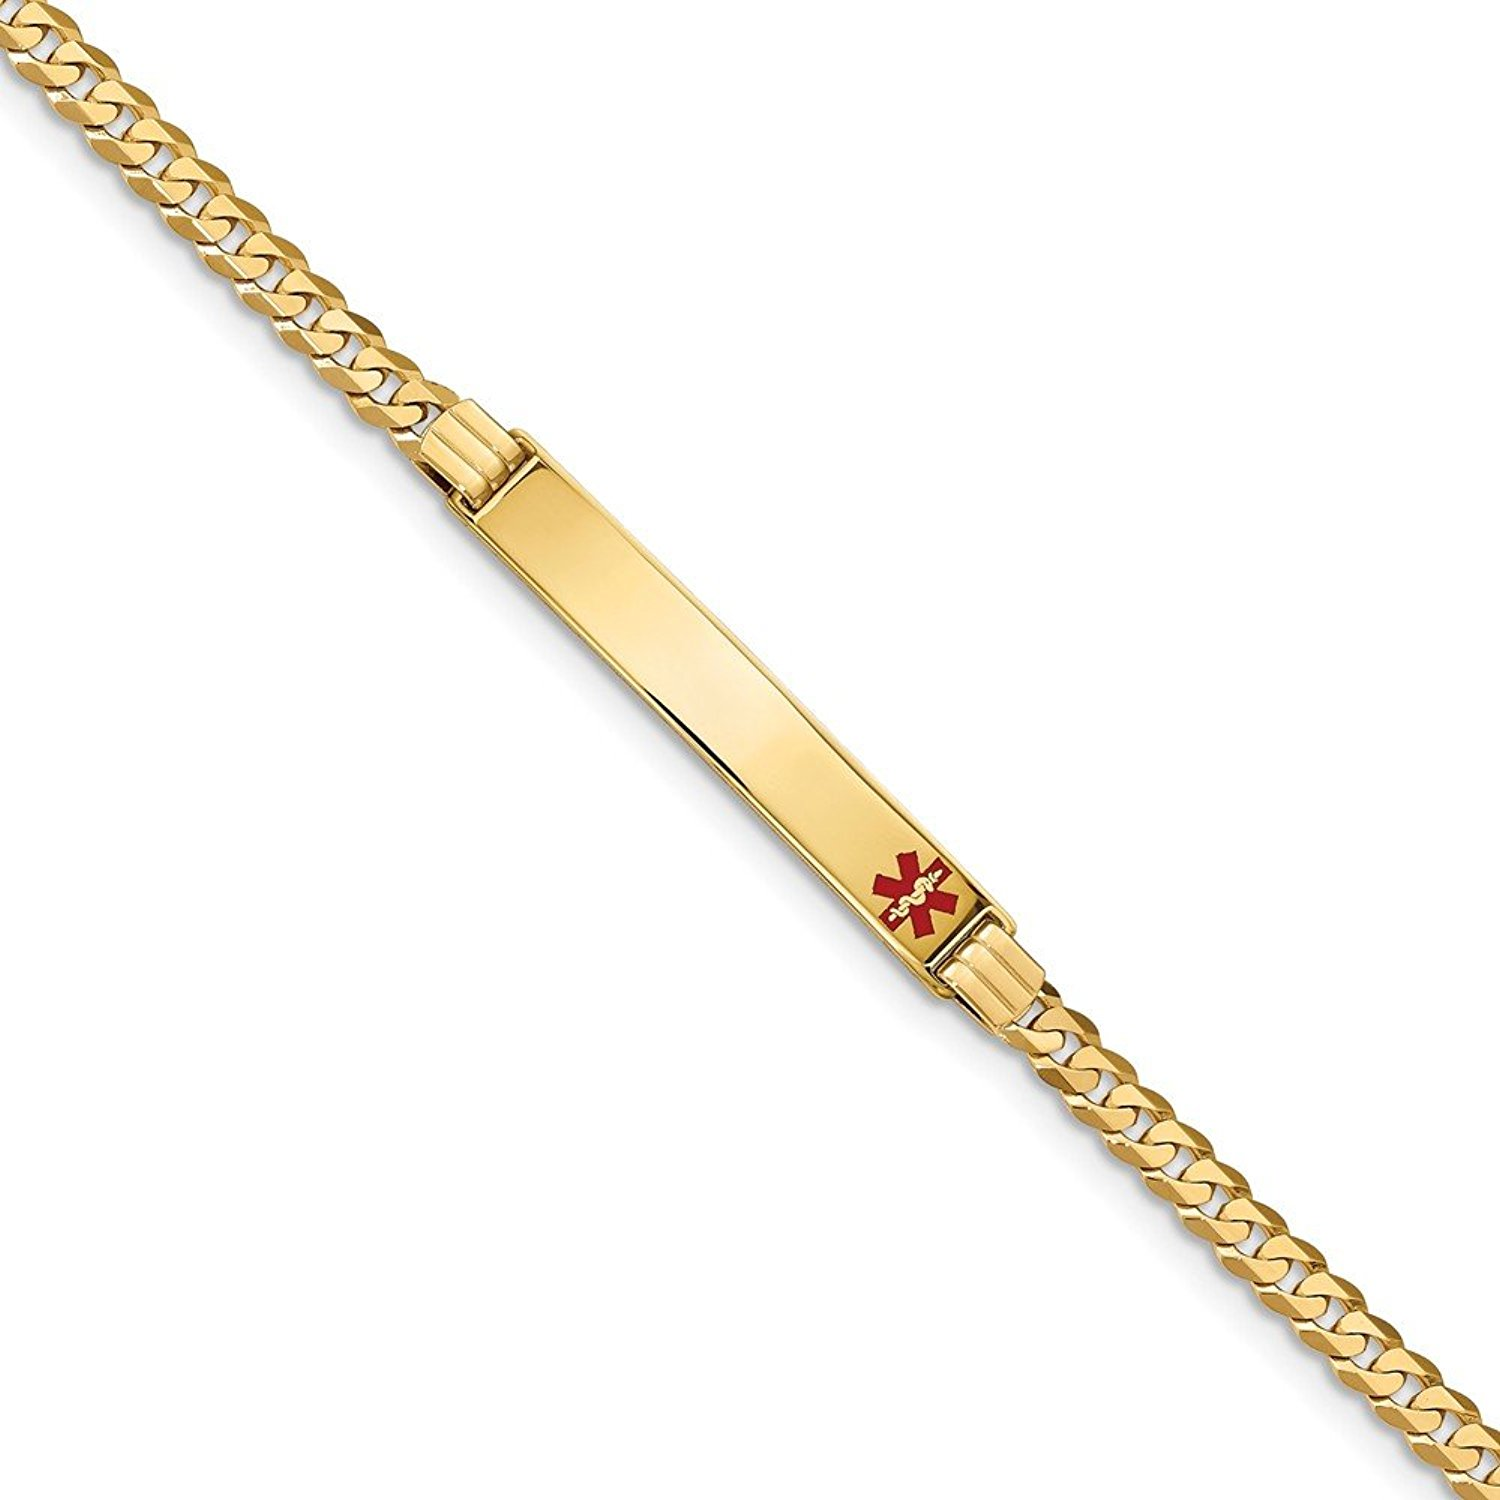 Sonia Jewels Solid 14k Yellow Gold Medical Red Enamel Cuban Curb Link ID Bracelet - with Secure Lobster Lock Clasp (6.5mm)